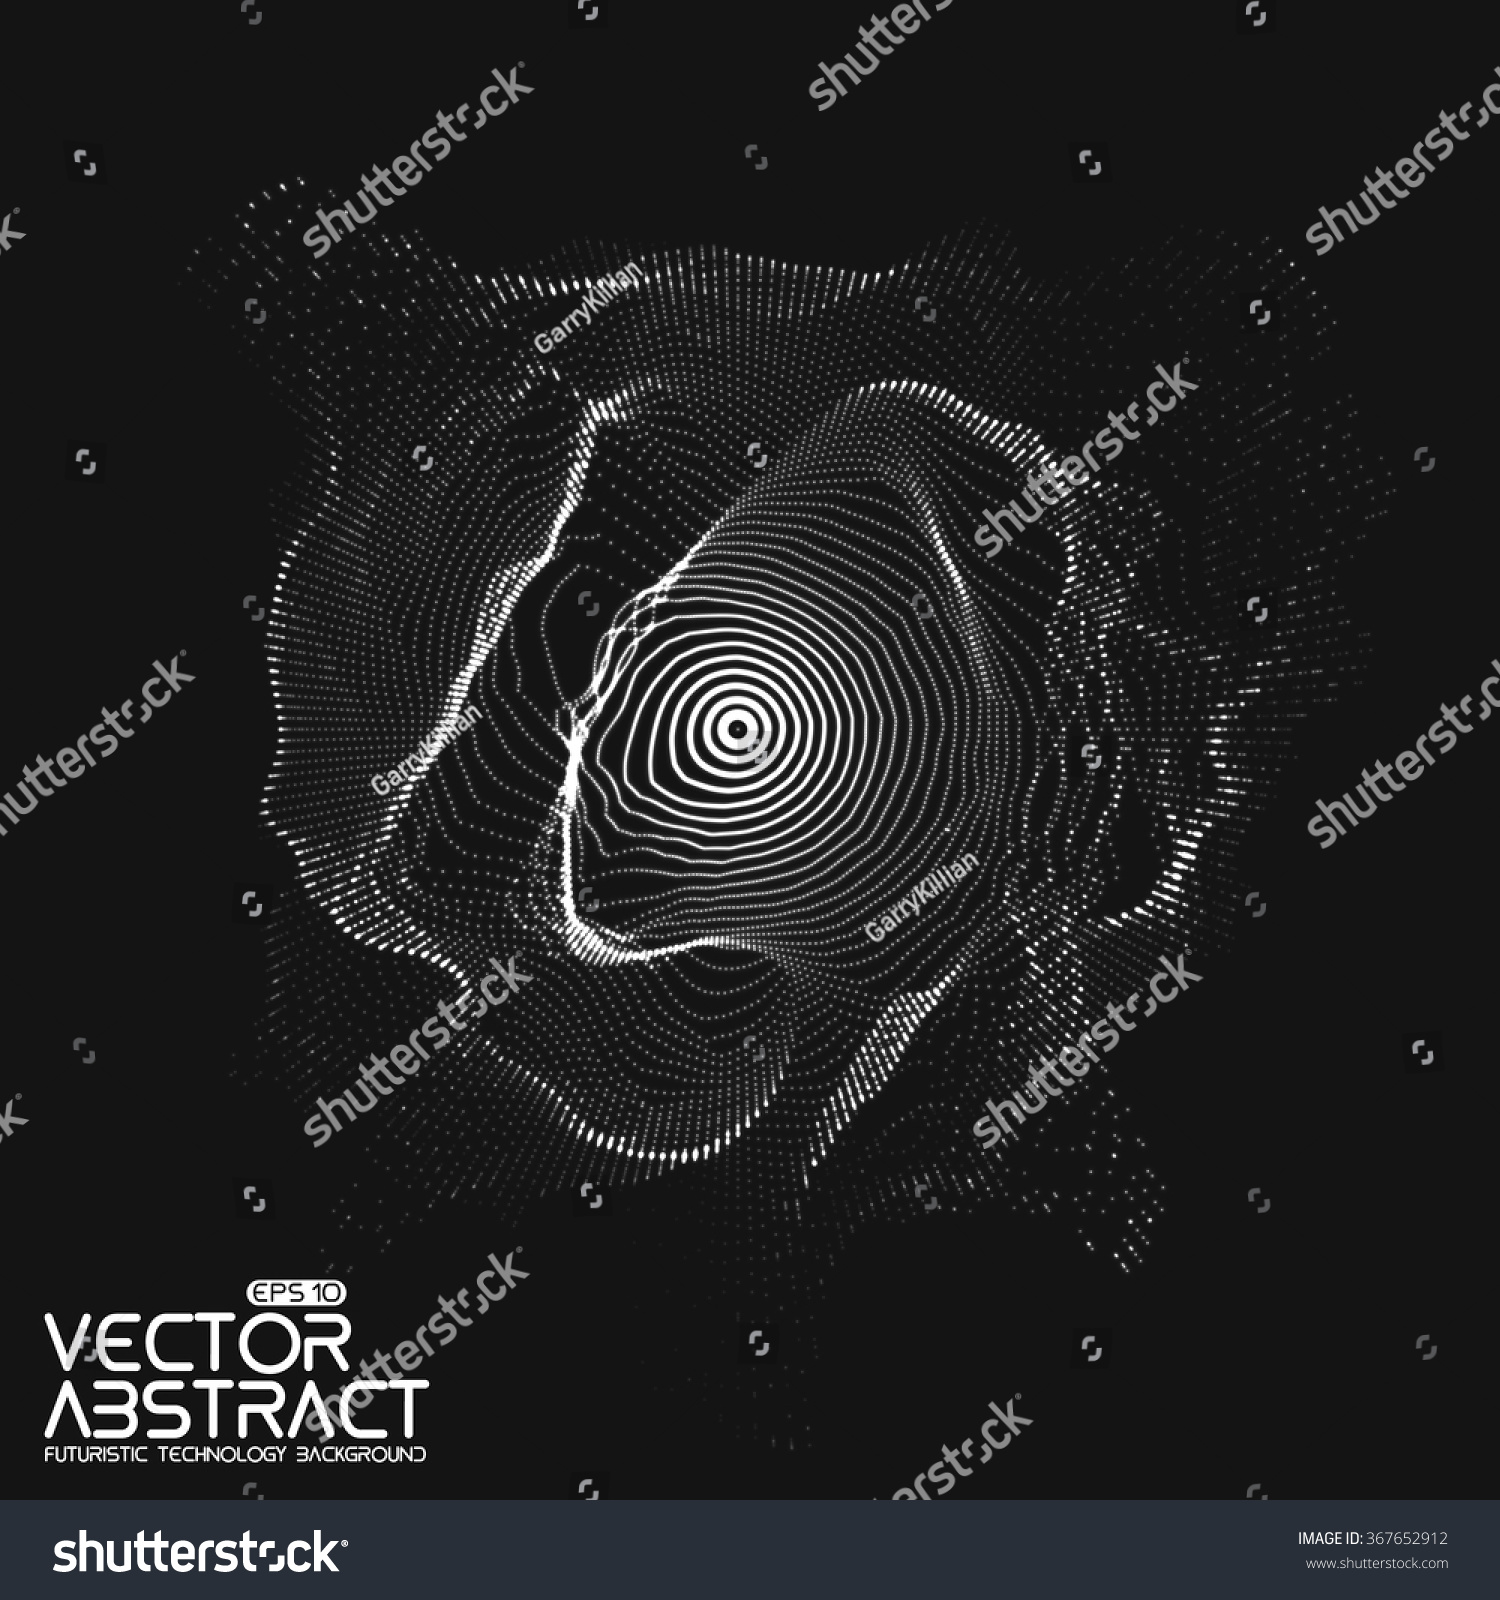 Abstract vector white mesh on dark background. Futuristic style card. Elegant background for business presentations.  Corrupted point sphere.  Chaos aesthetics. #367652912